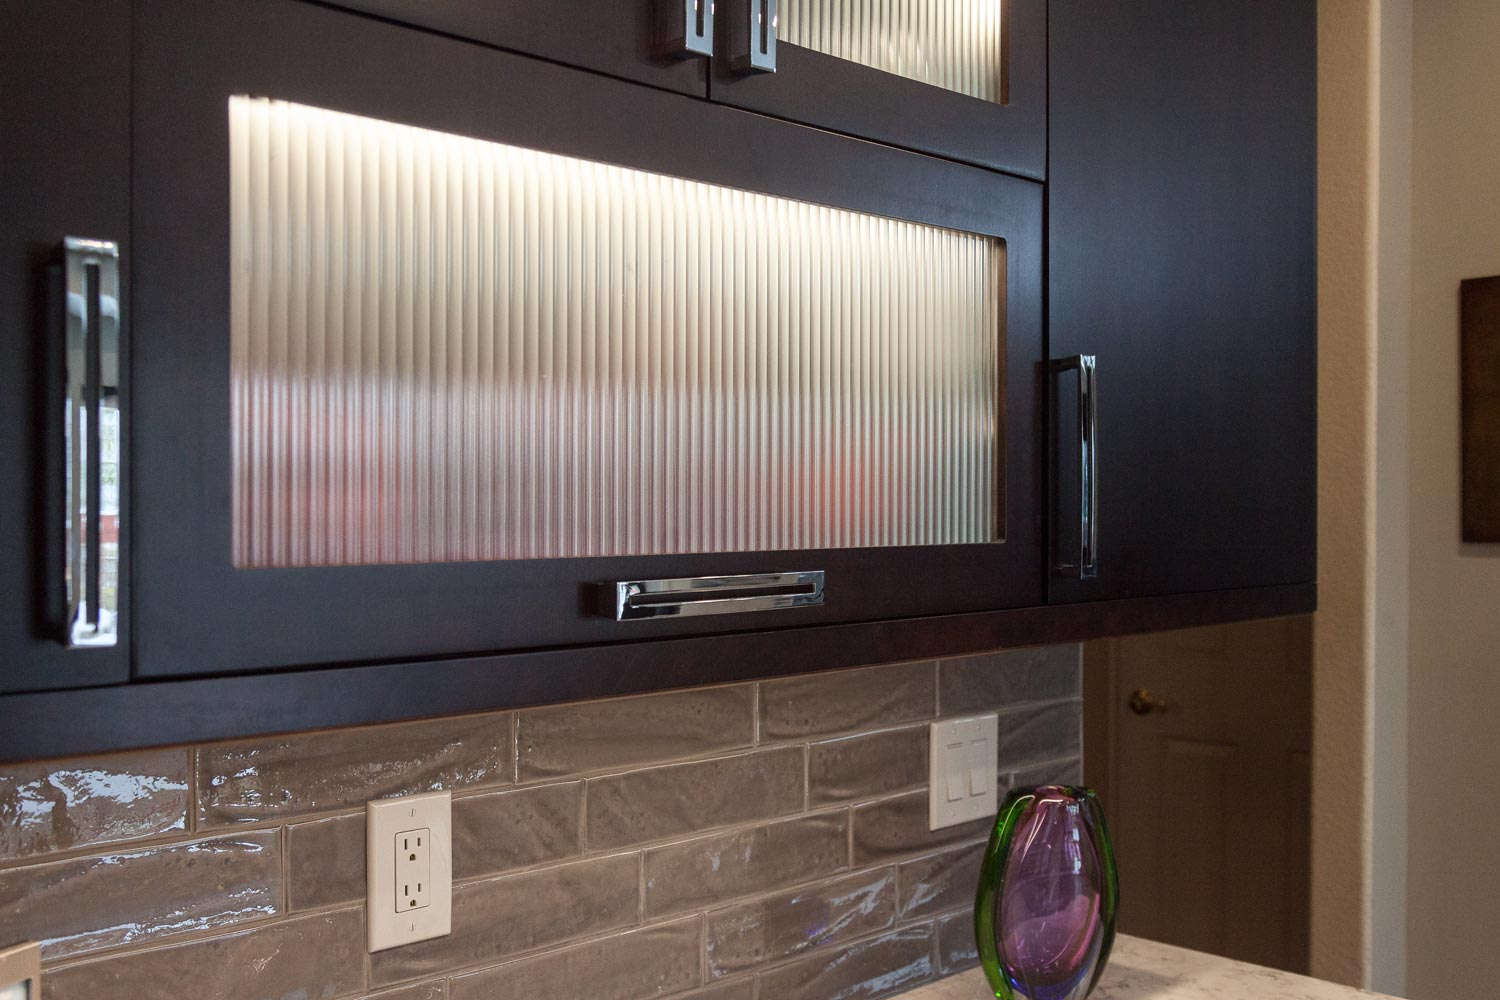 Unique modern cabinetry in this lakewood co renovation kitchen project by Mike